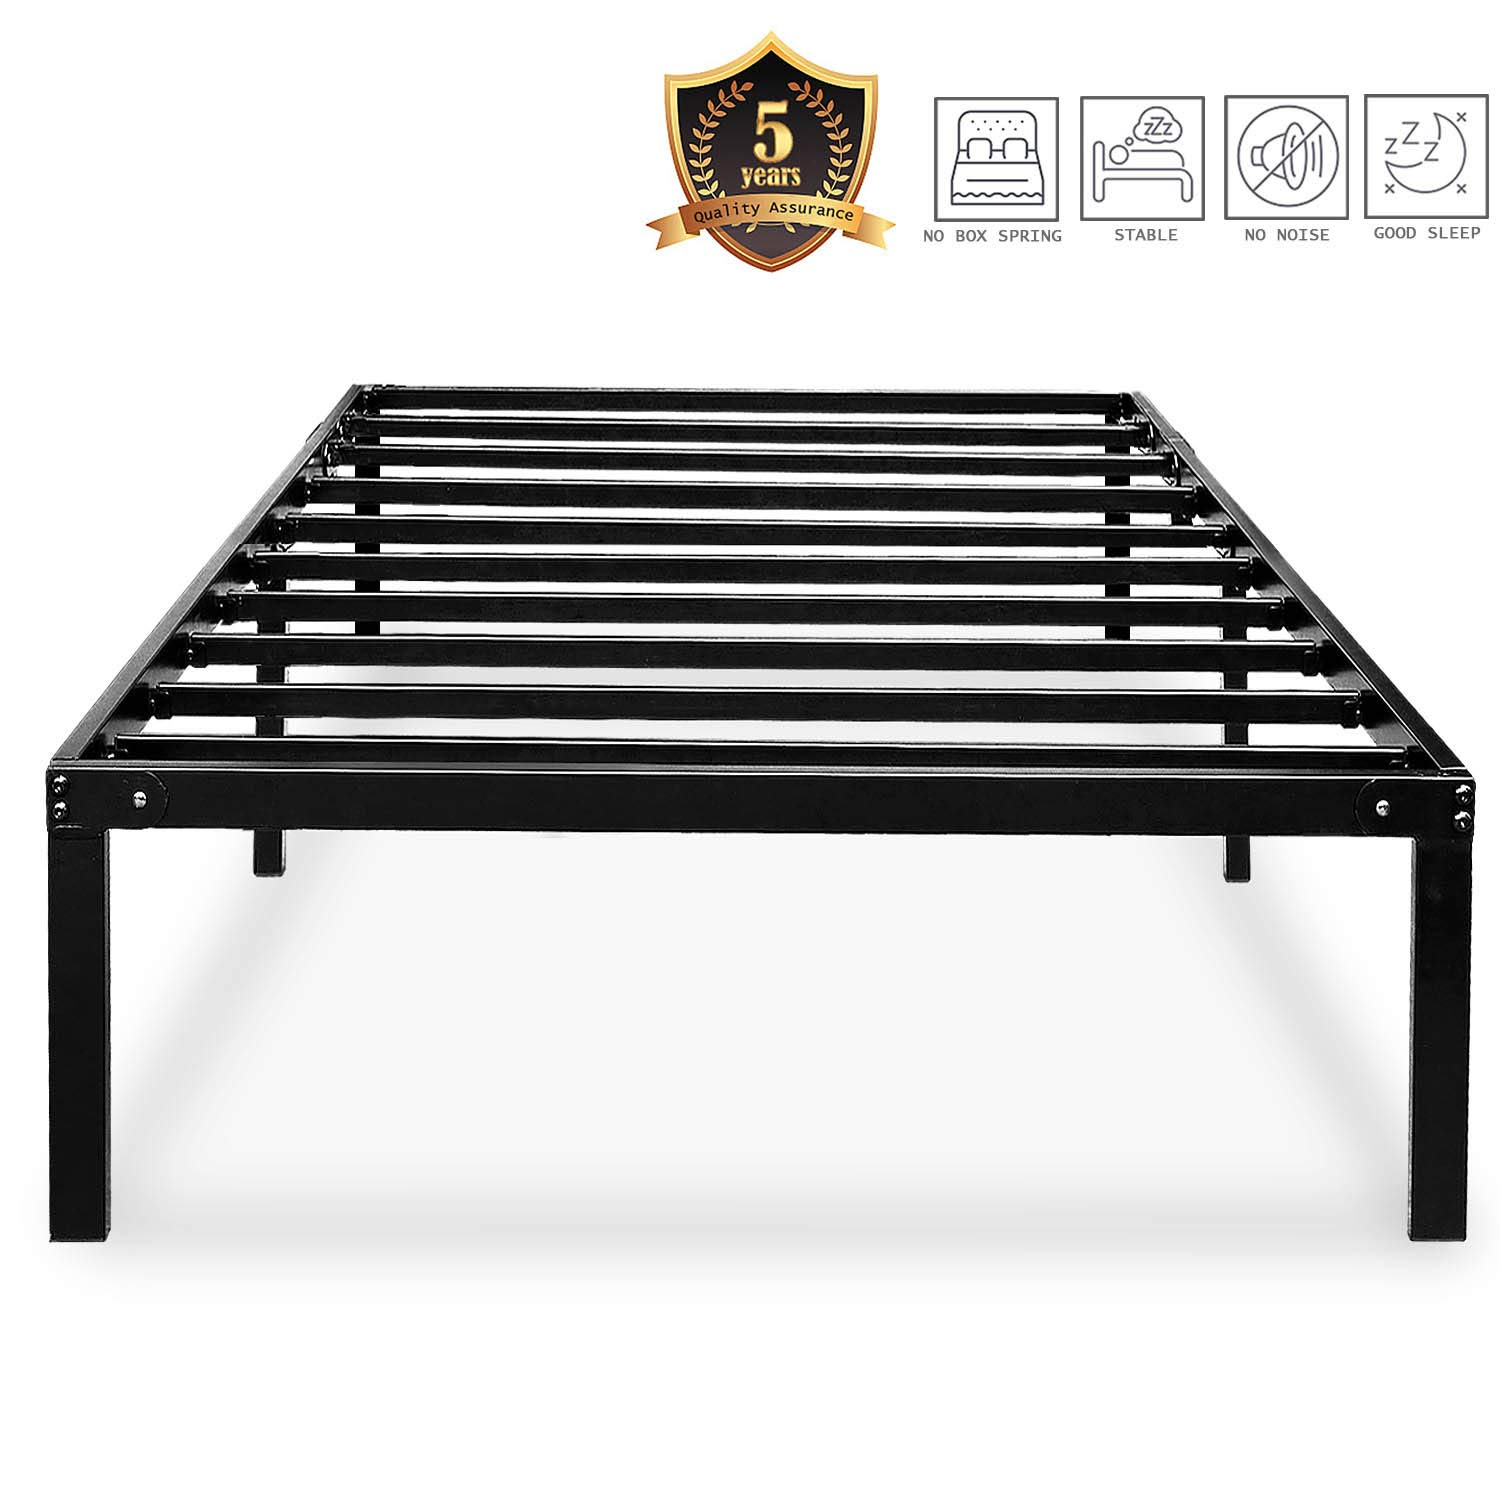 HAAGEEP Black Twin Metal Bed Frame No Boxspring Needed 14 Inch Beds Frames with Storage for Kids Girls Boys, at by HAAGEEP